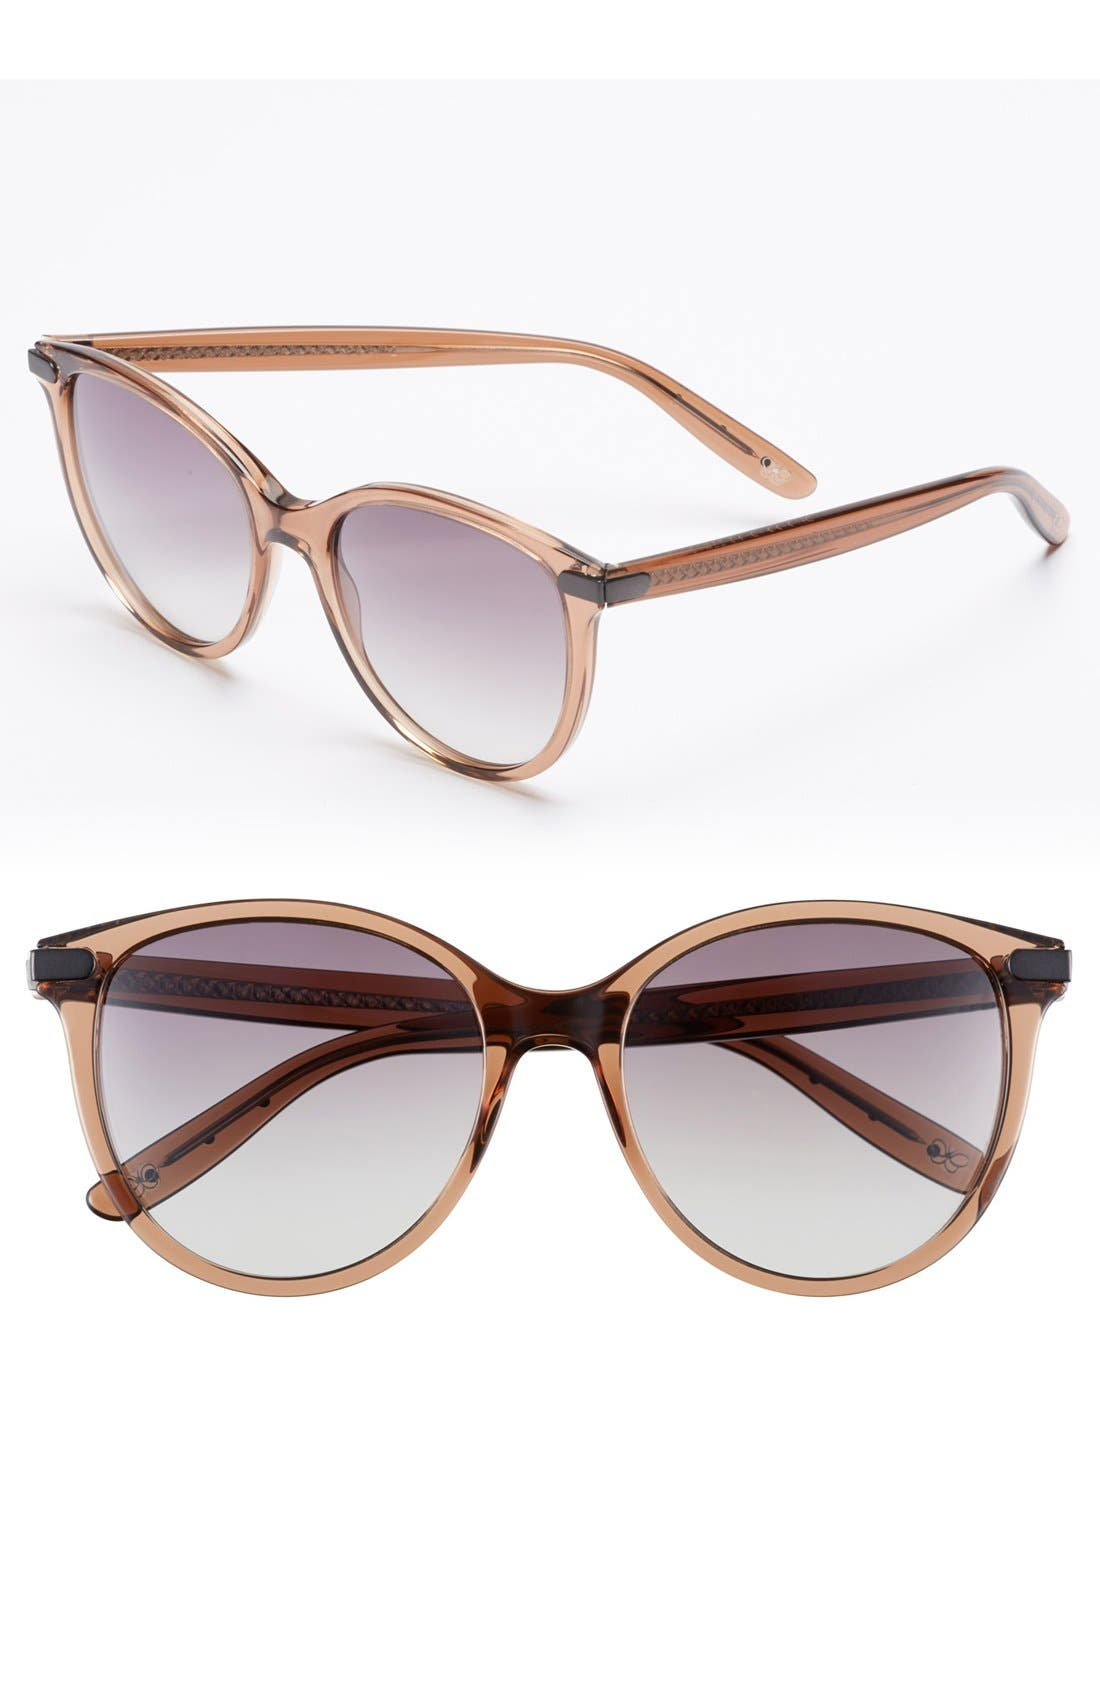 Main Image - Bottega Veneta 55mm Oversized Sunglasses